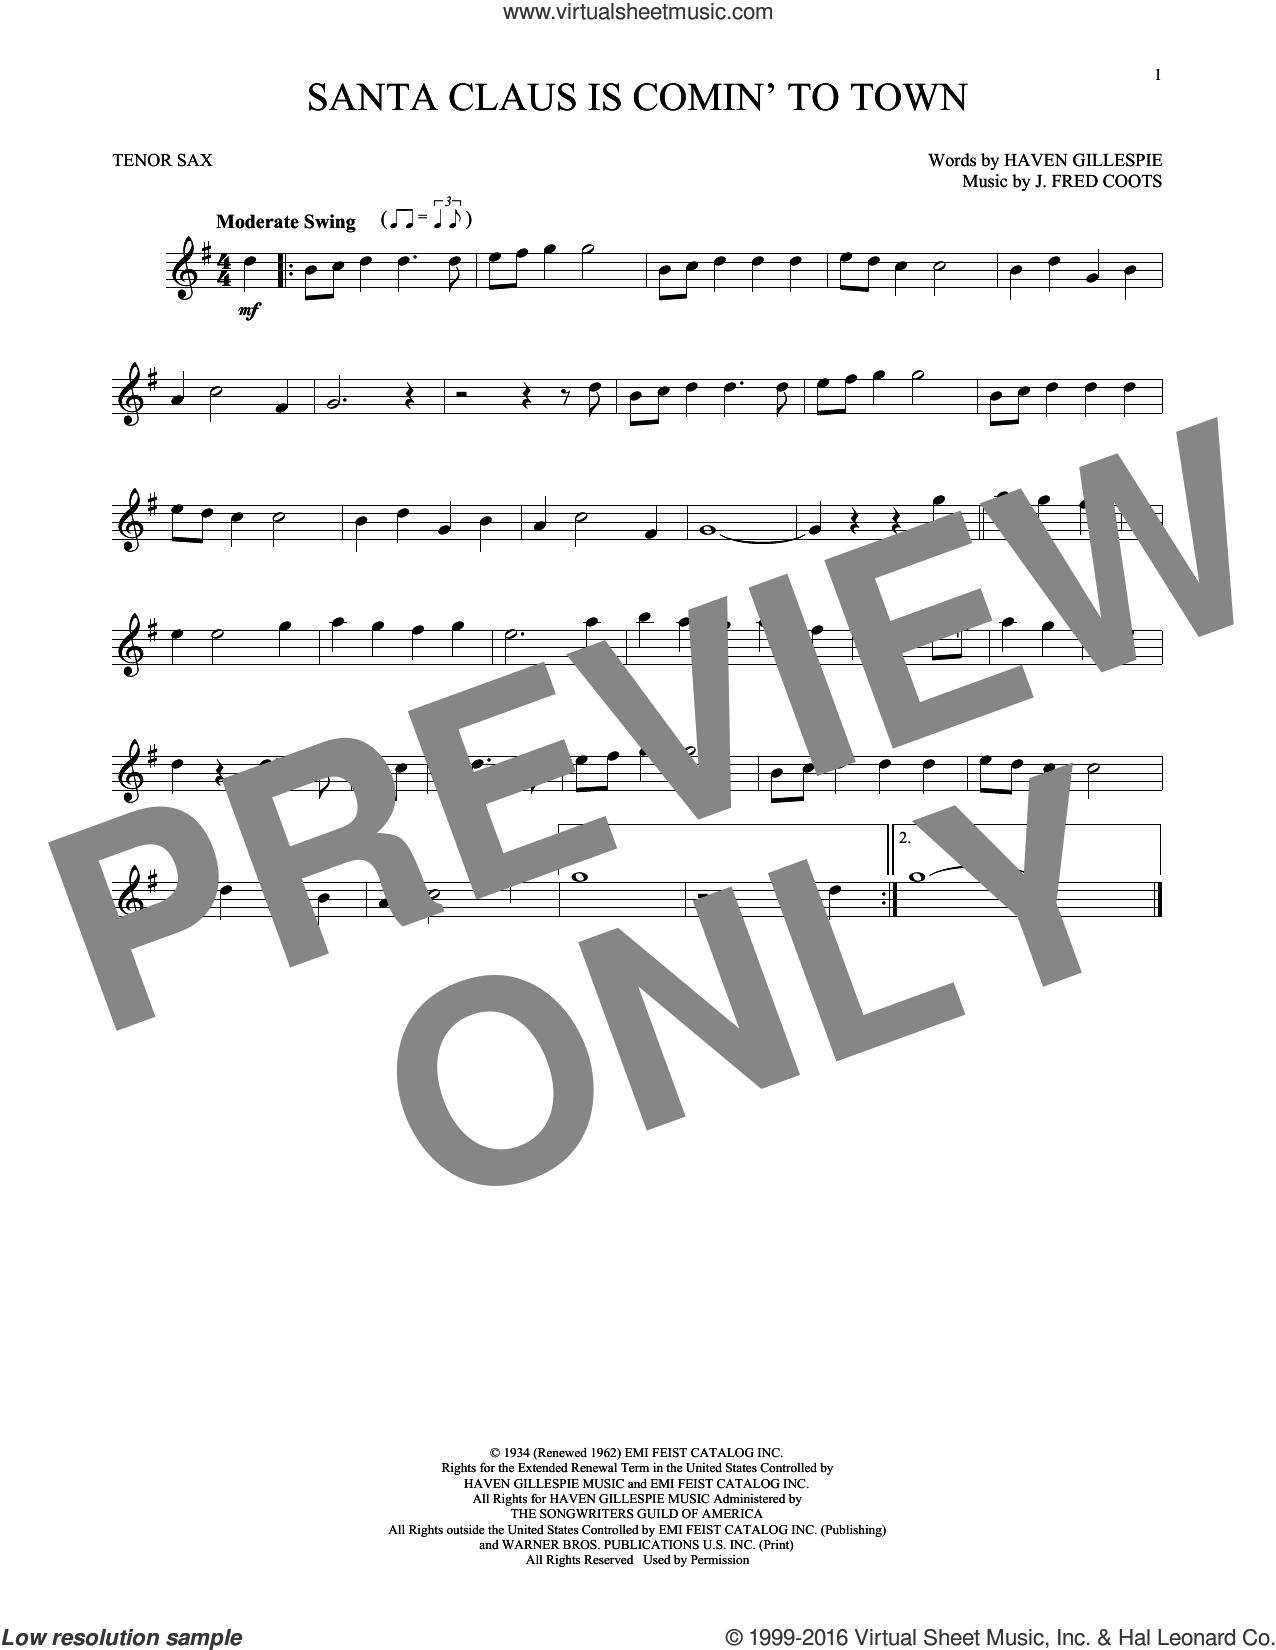 Santa Claus Is Comin' To Town sheet music for tenor saxophone solo by J. Fred Coots and Haven Gillespie, intermediate skill level